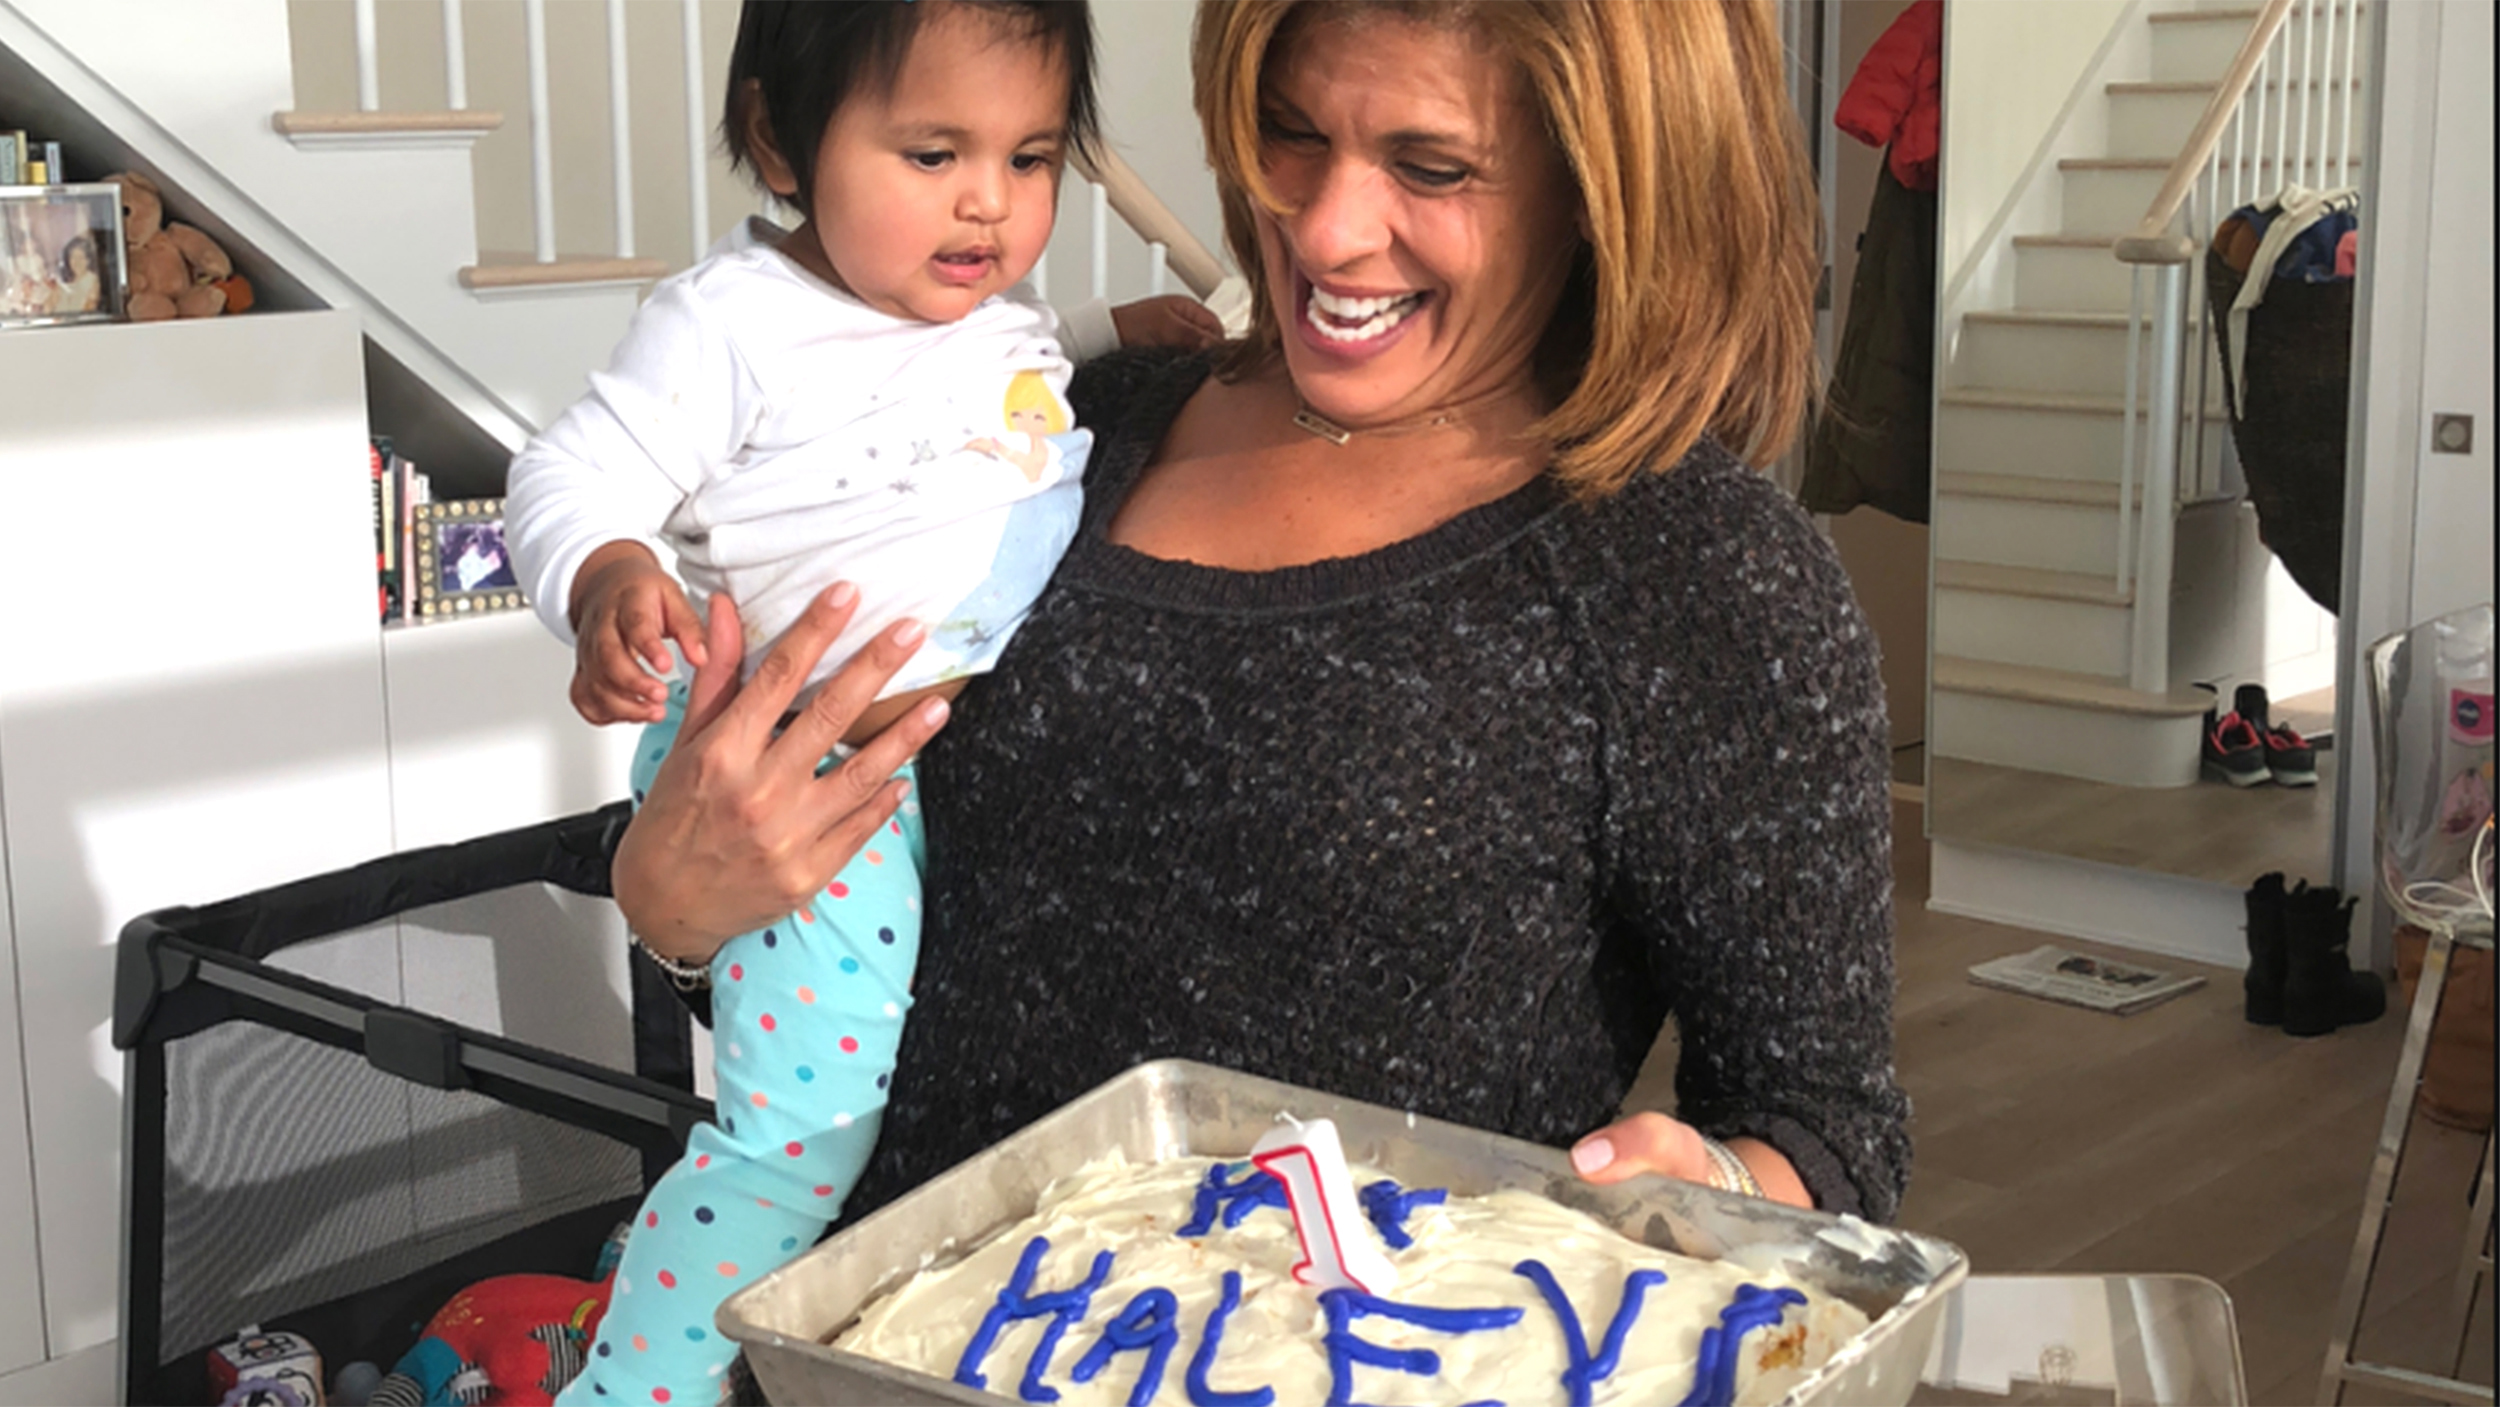 Haley Joy is turning 1! See video and pics from her big birthday bash